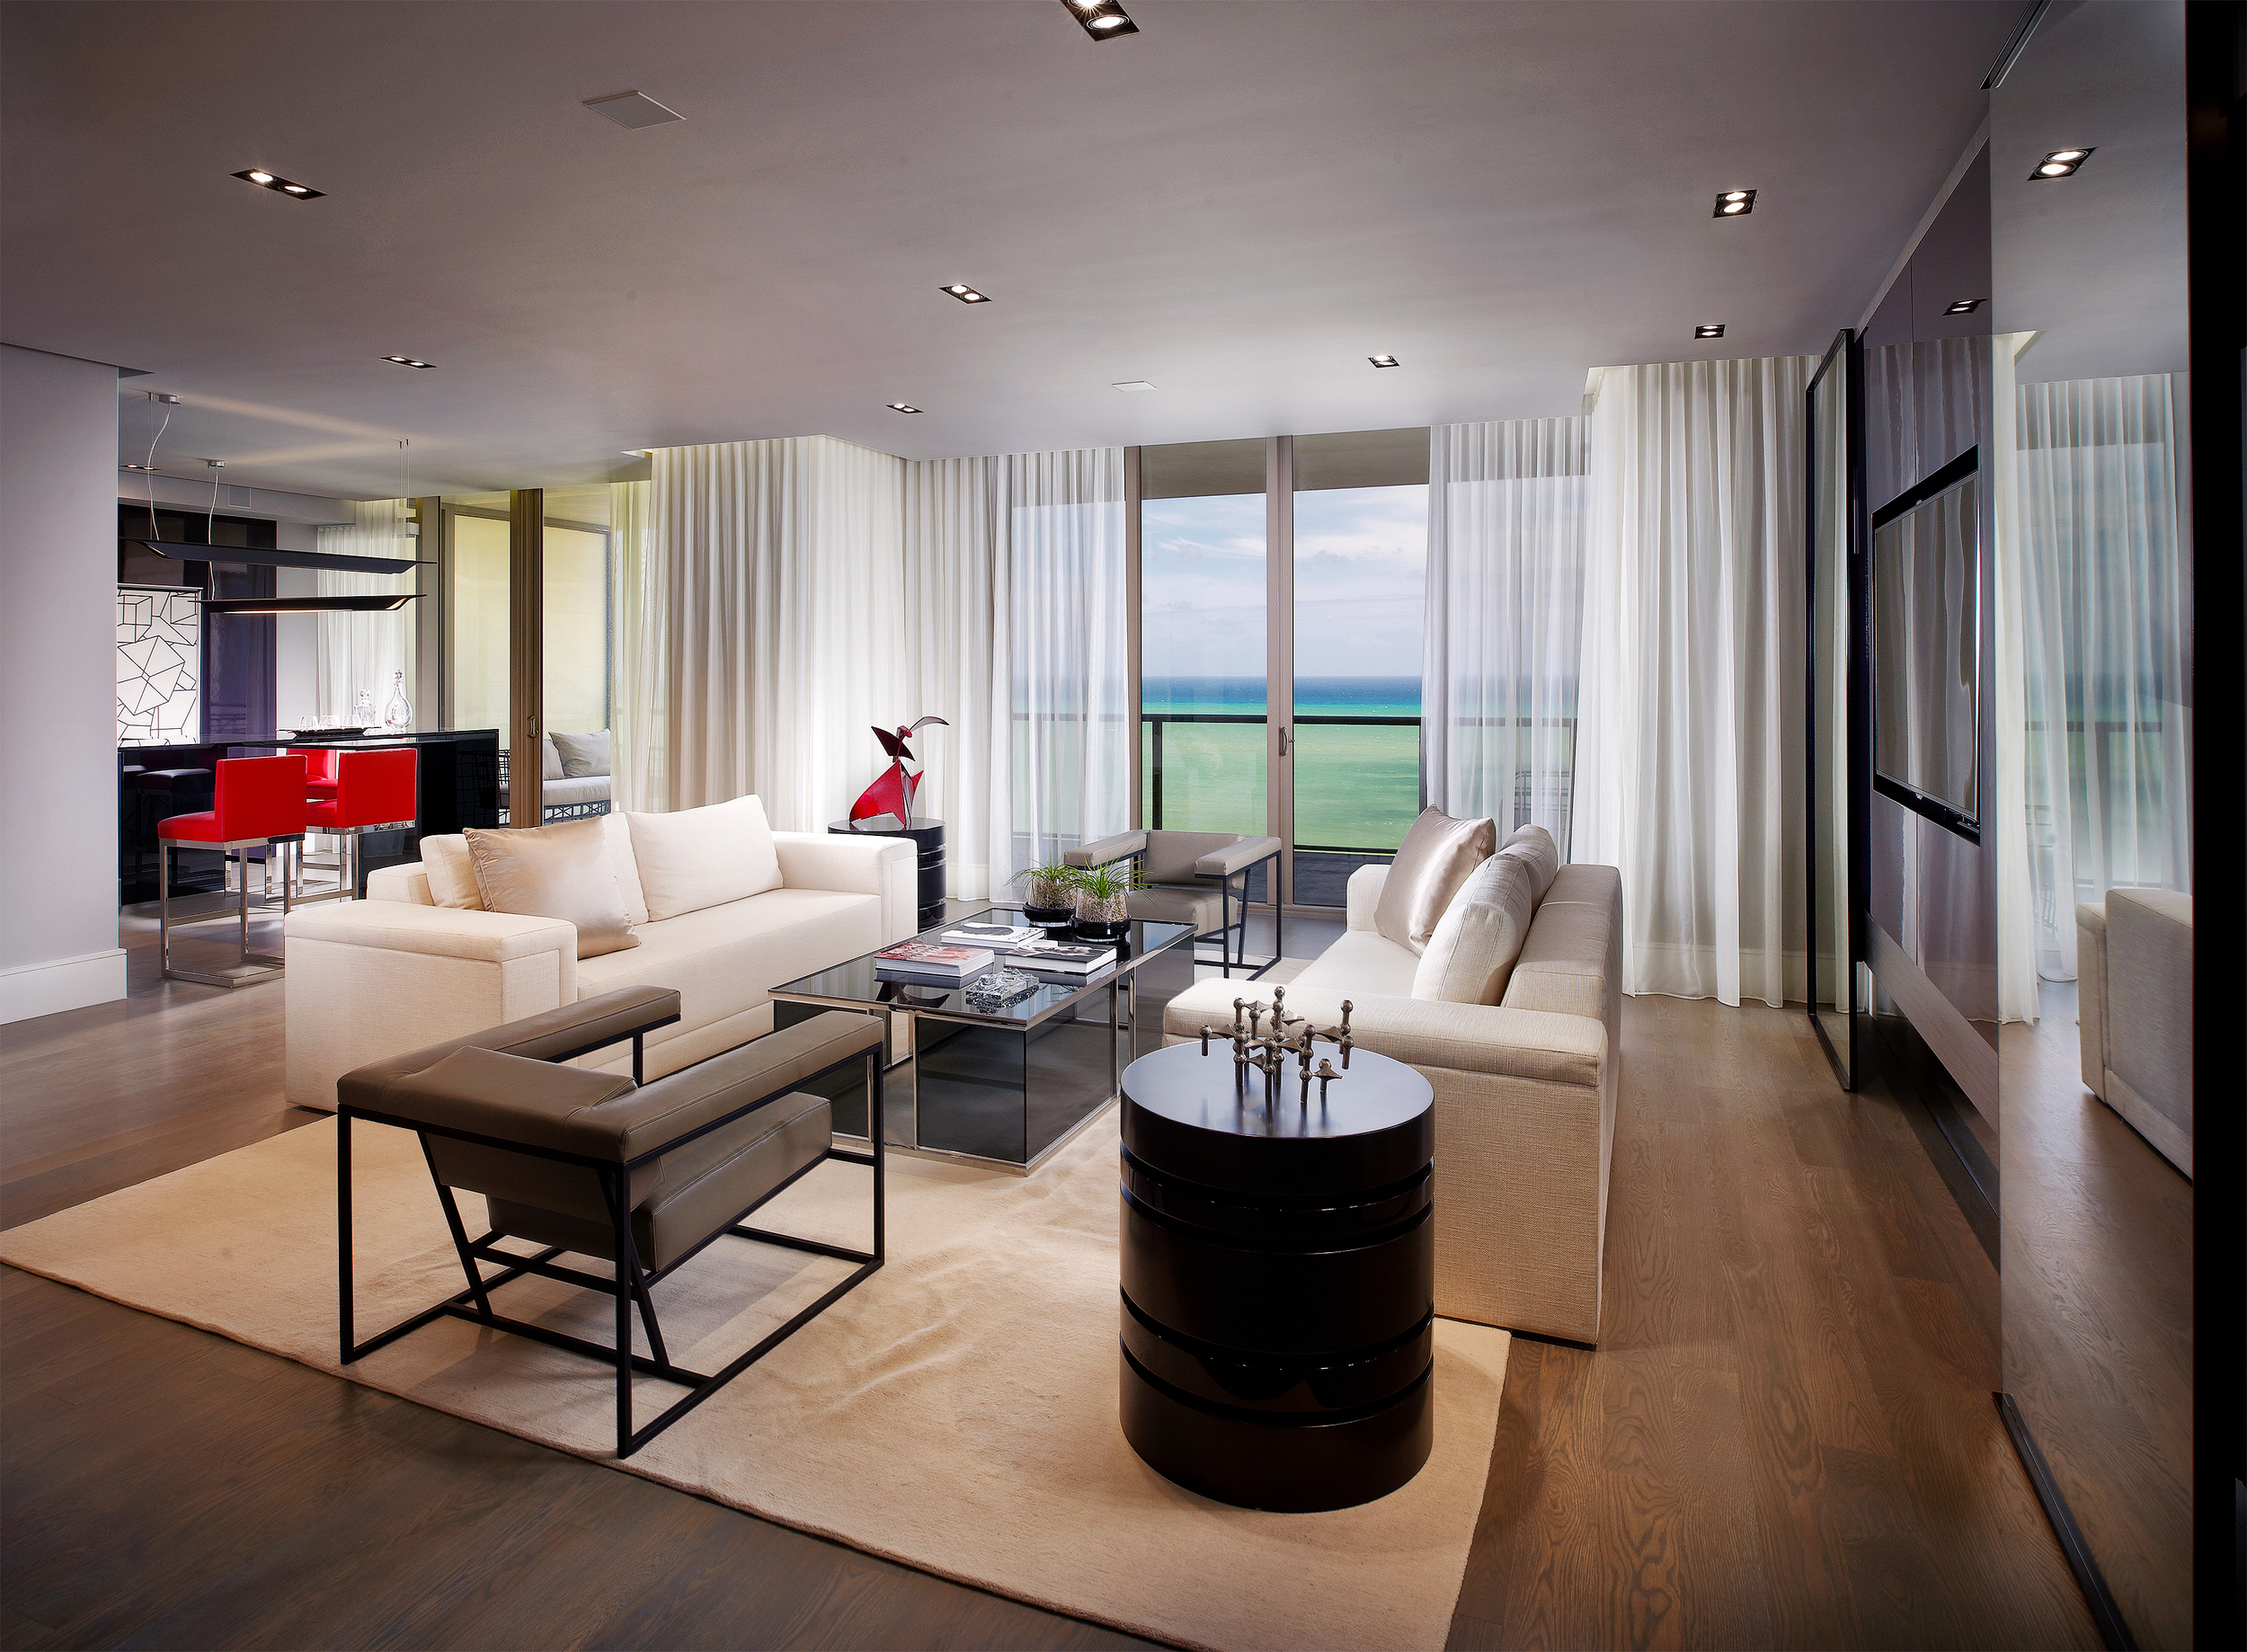 StRegis-2104_Living-view.jpg